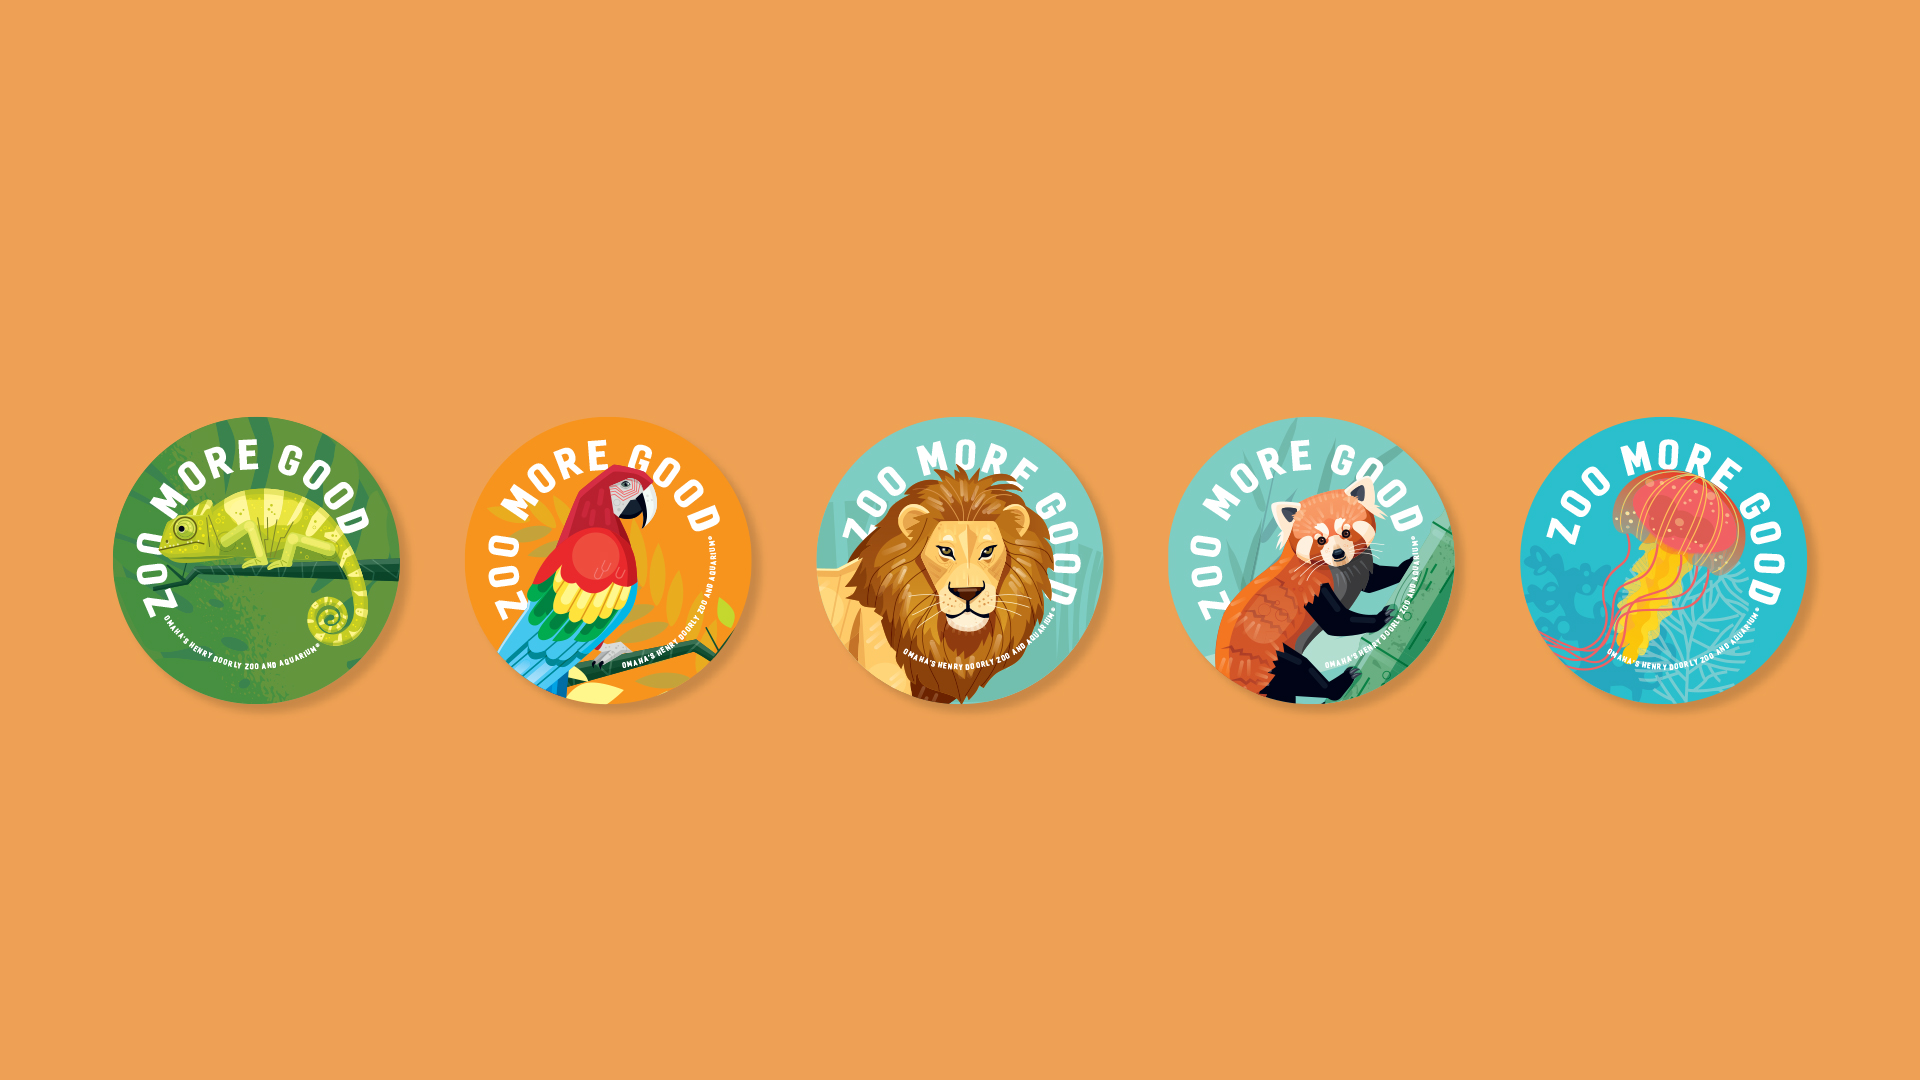 Zoo More Good Stickers